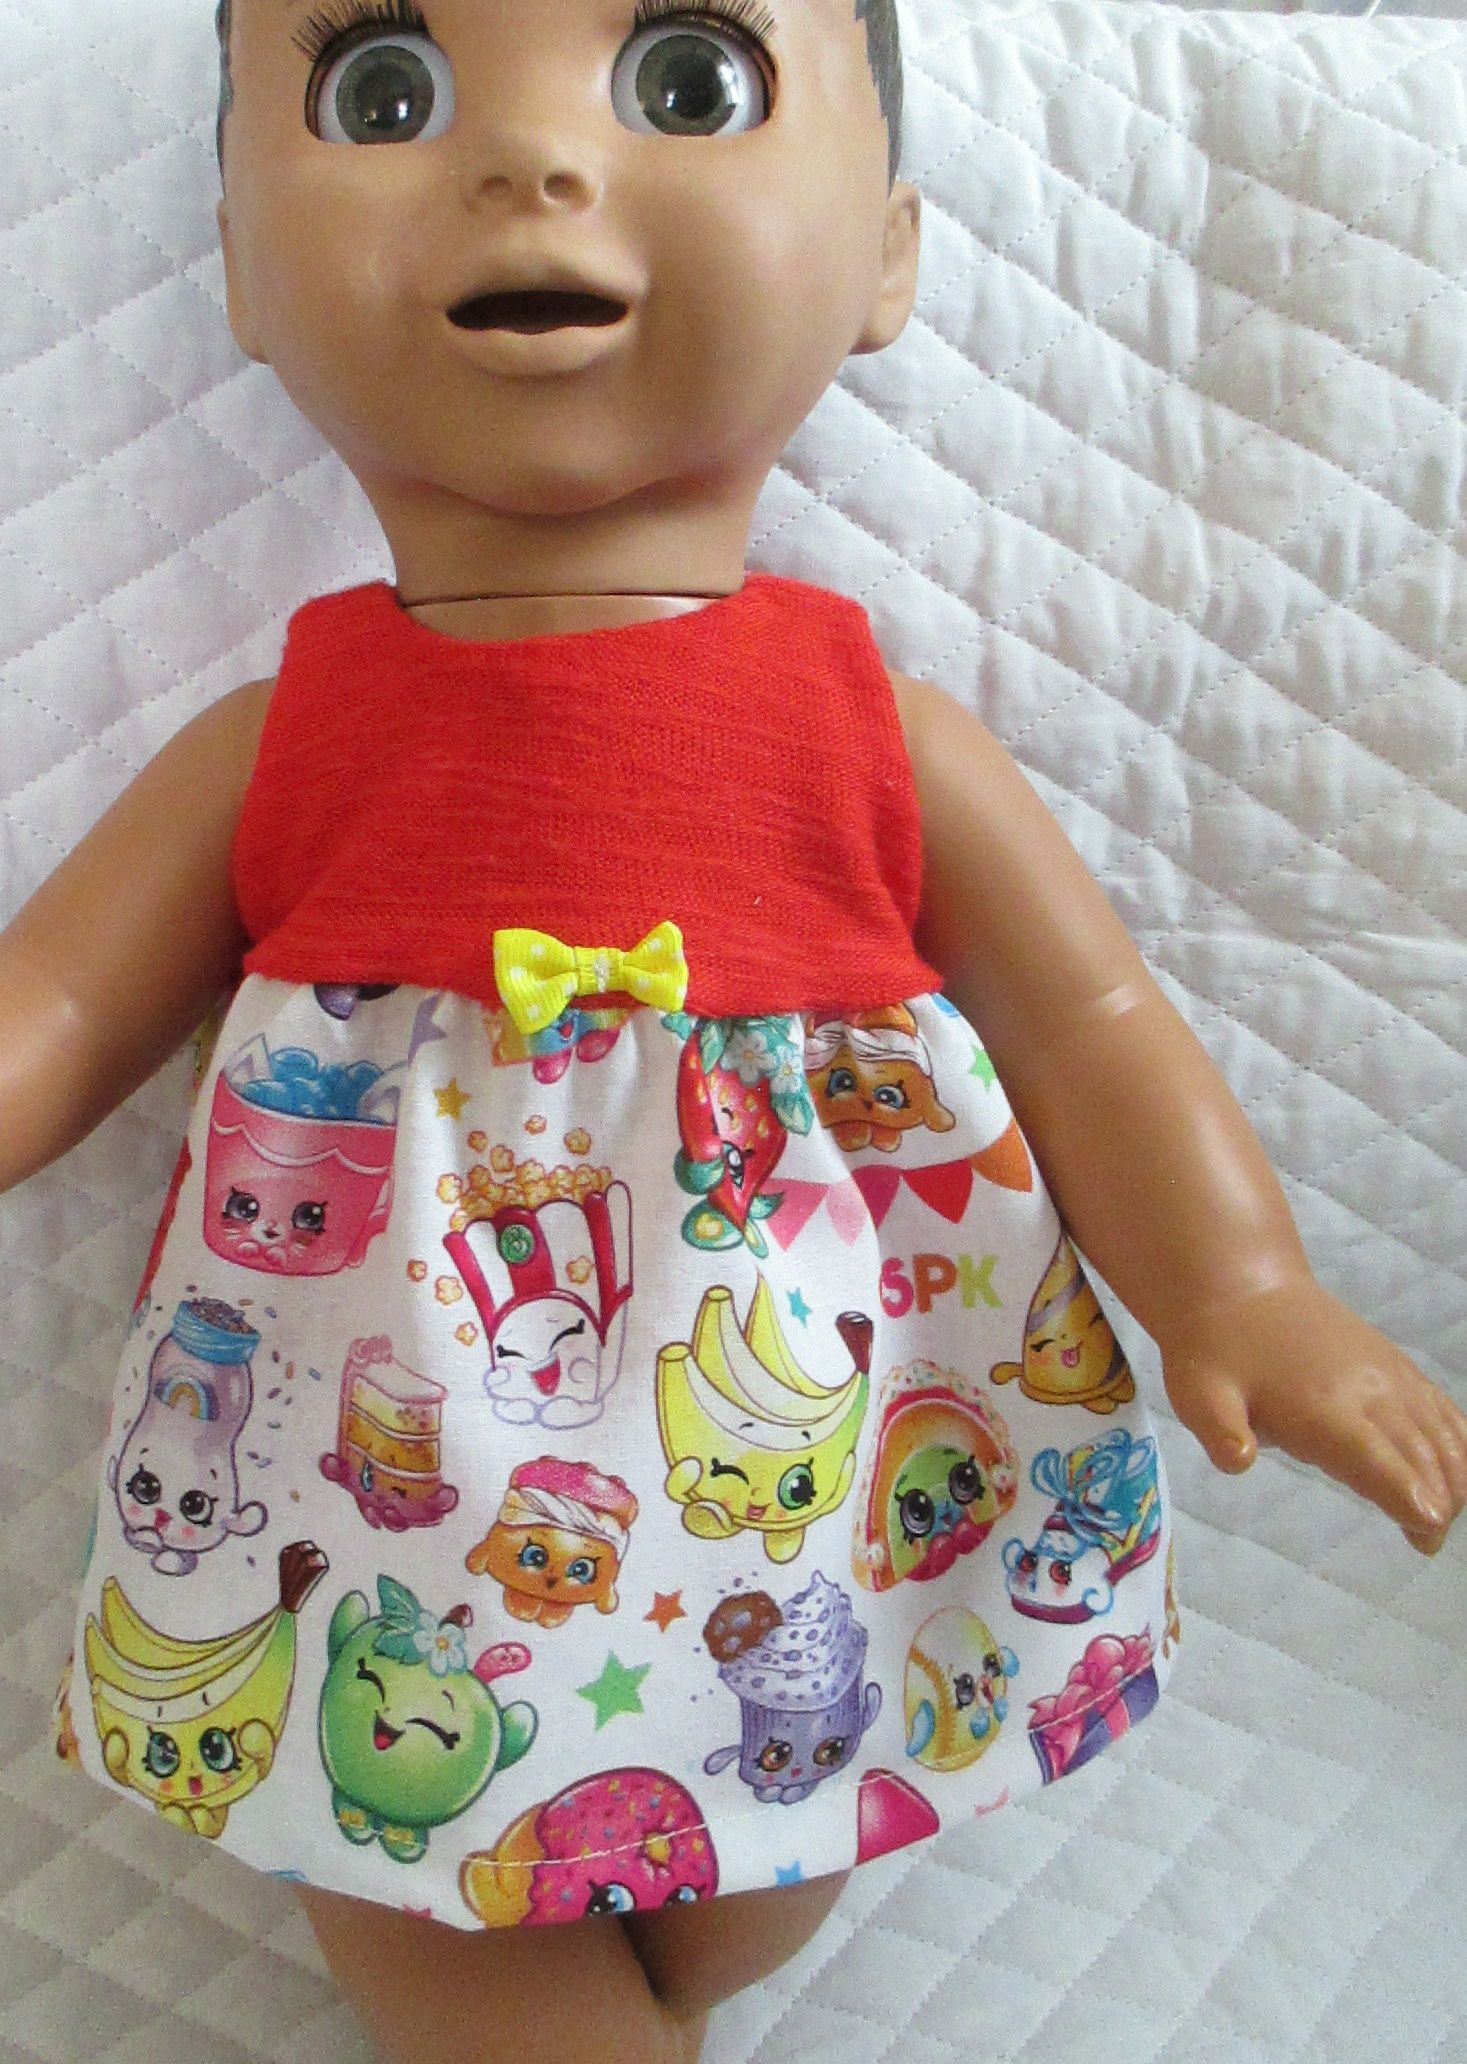 5d4558ce12db Luvabella Shopkins Sleeveless Dress With Matching Panties 2 Pc Set Doll  Clothes Just For Luvabella Doll by Giftsbygammy on Etsy